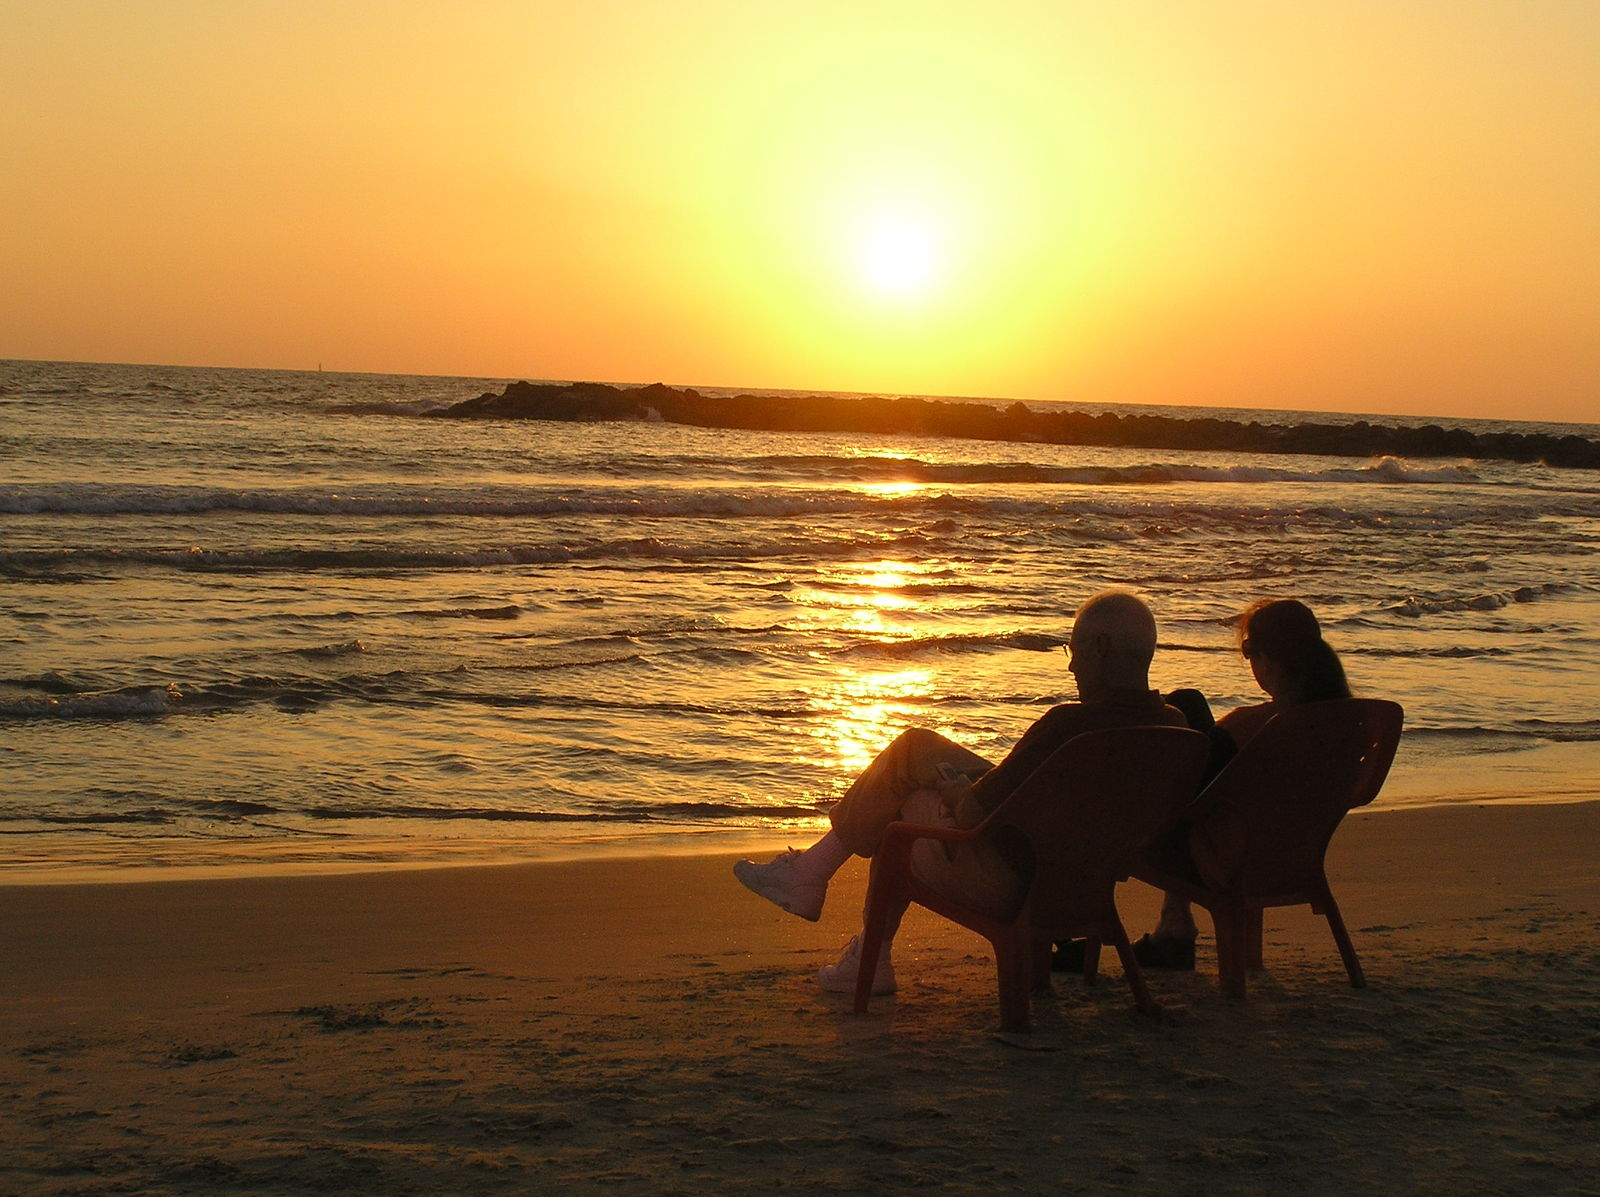 https://images.freeimages.com/images/large-previews/d42/sunset-couple-1563169.jpg